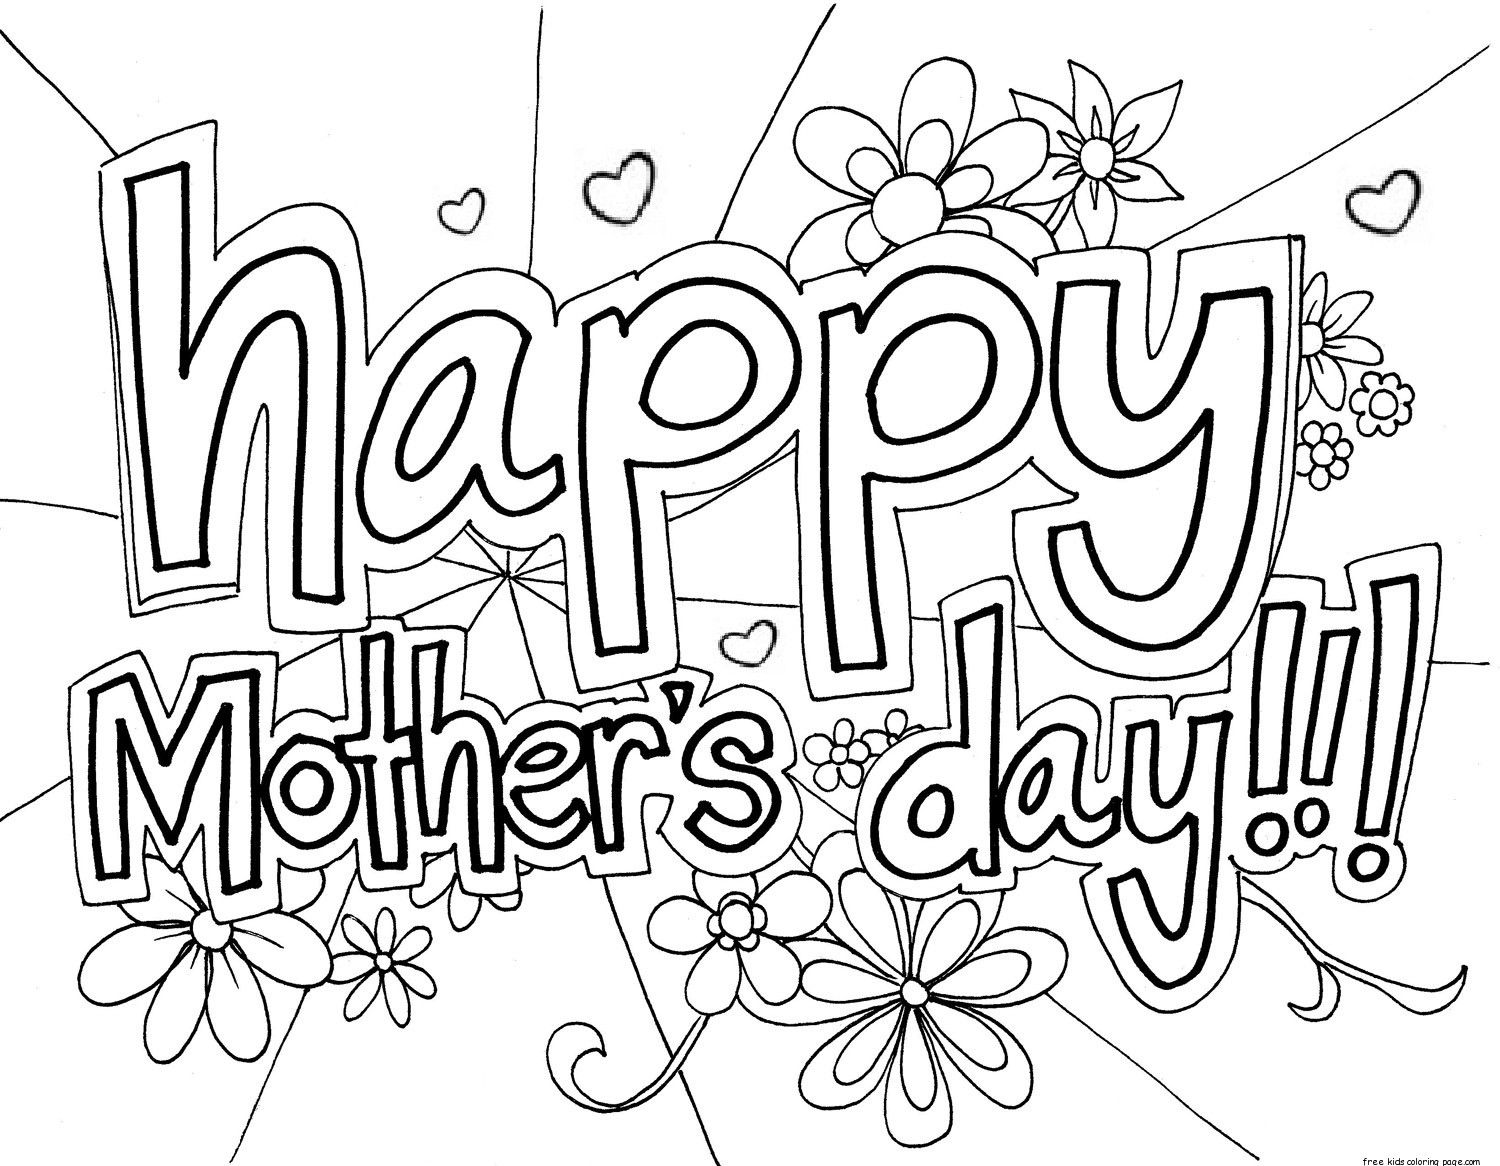 mom and daughter colouring pages - Clip Art Library | 1166x1500